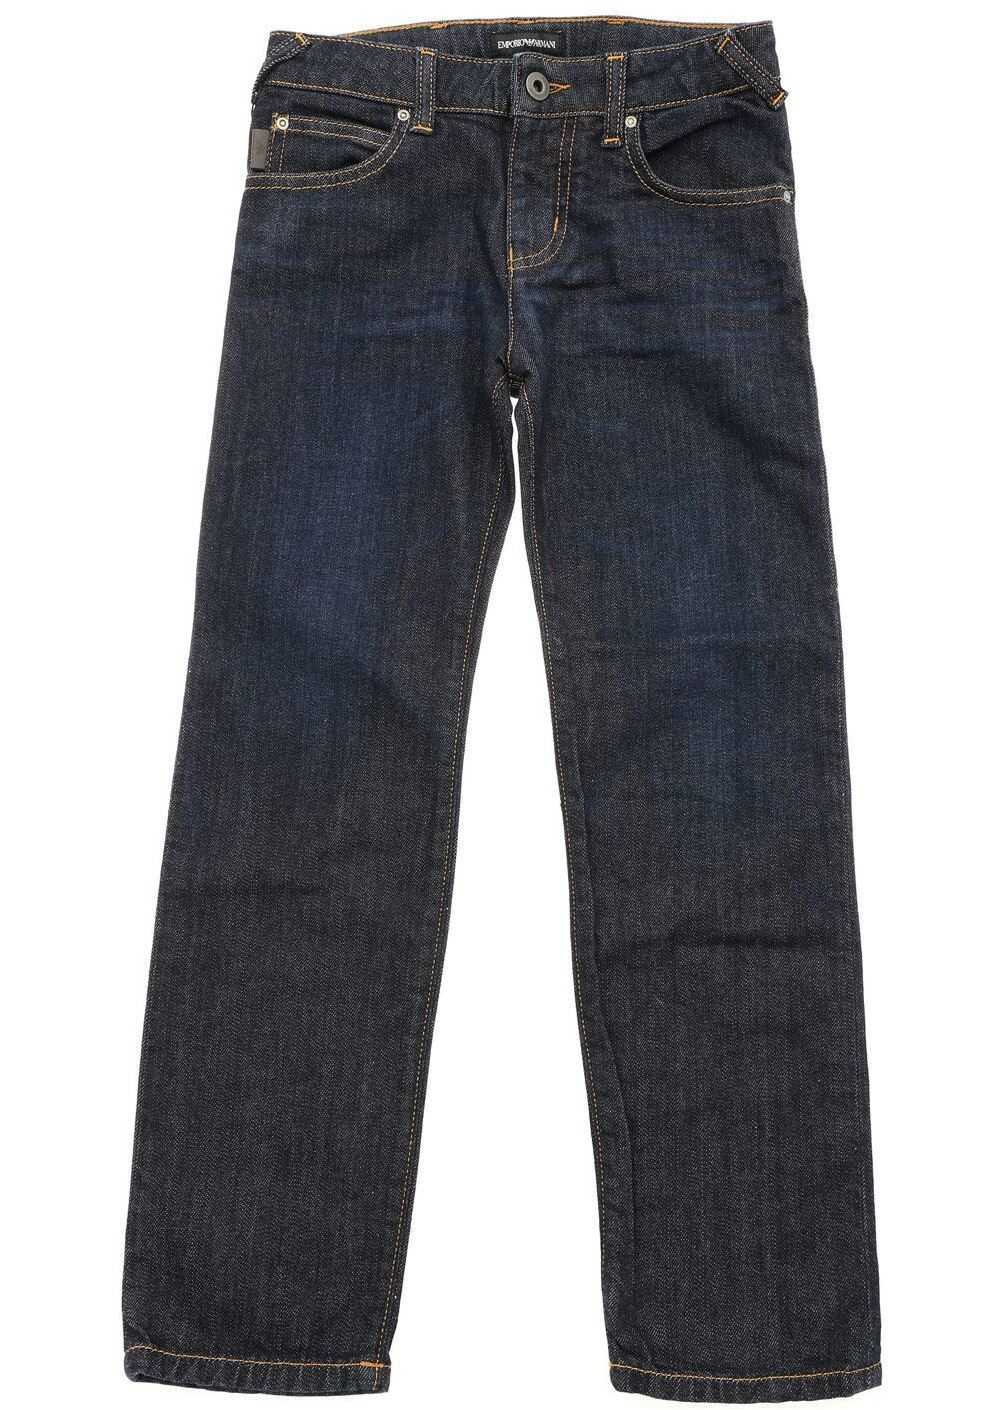 Dark Blue 5 Pocket Jeans